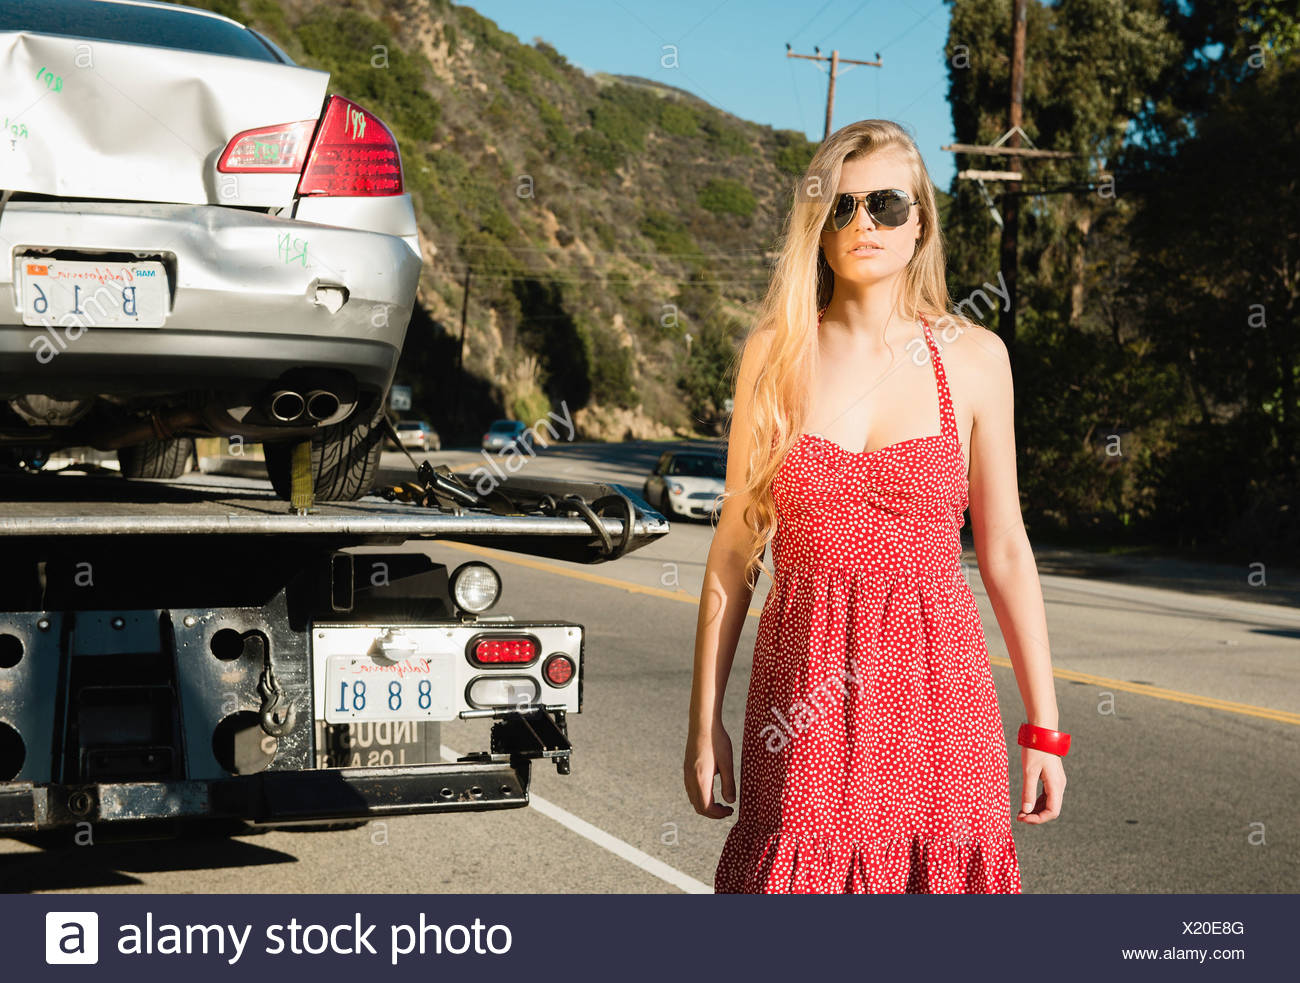 Young woman looking at camera as tow truck takes away damaged car - Stock Image